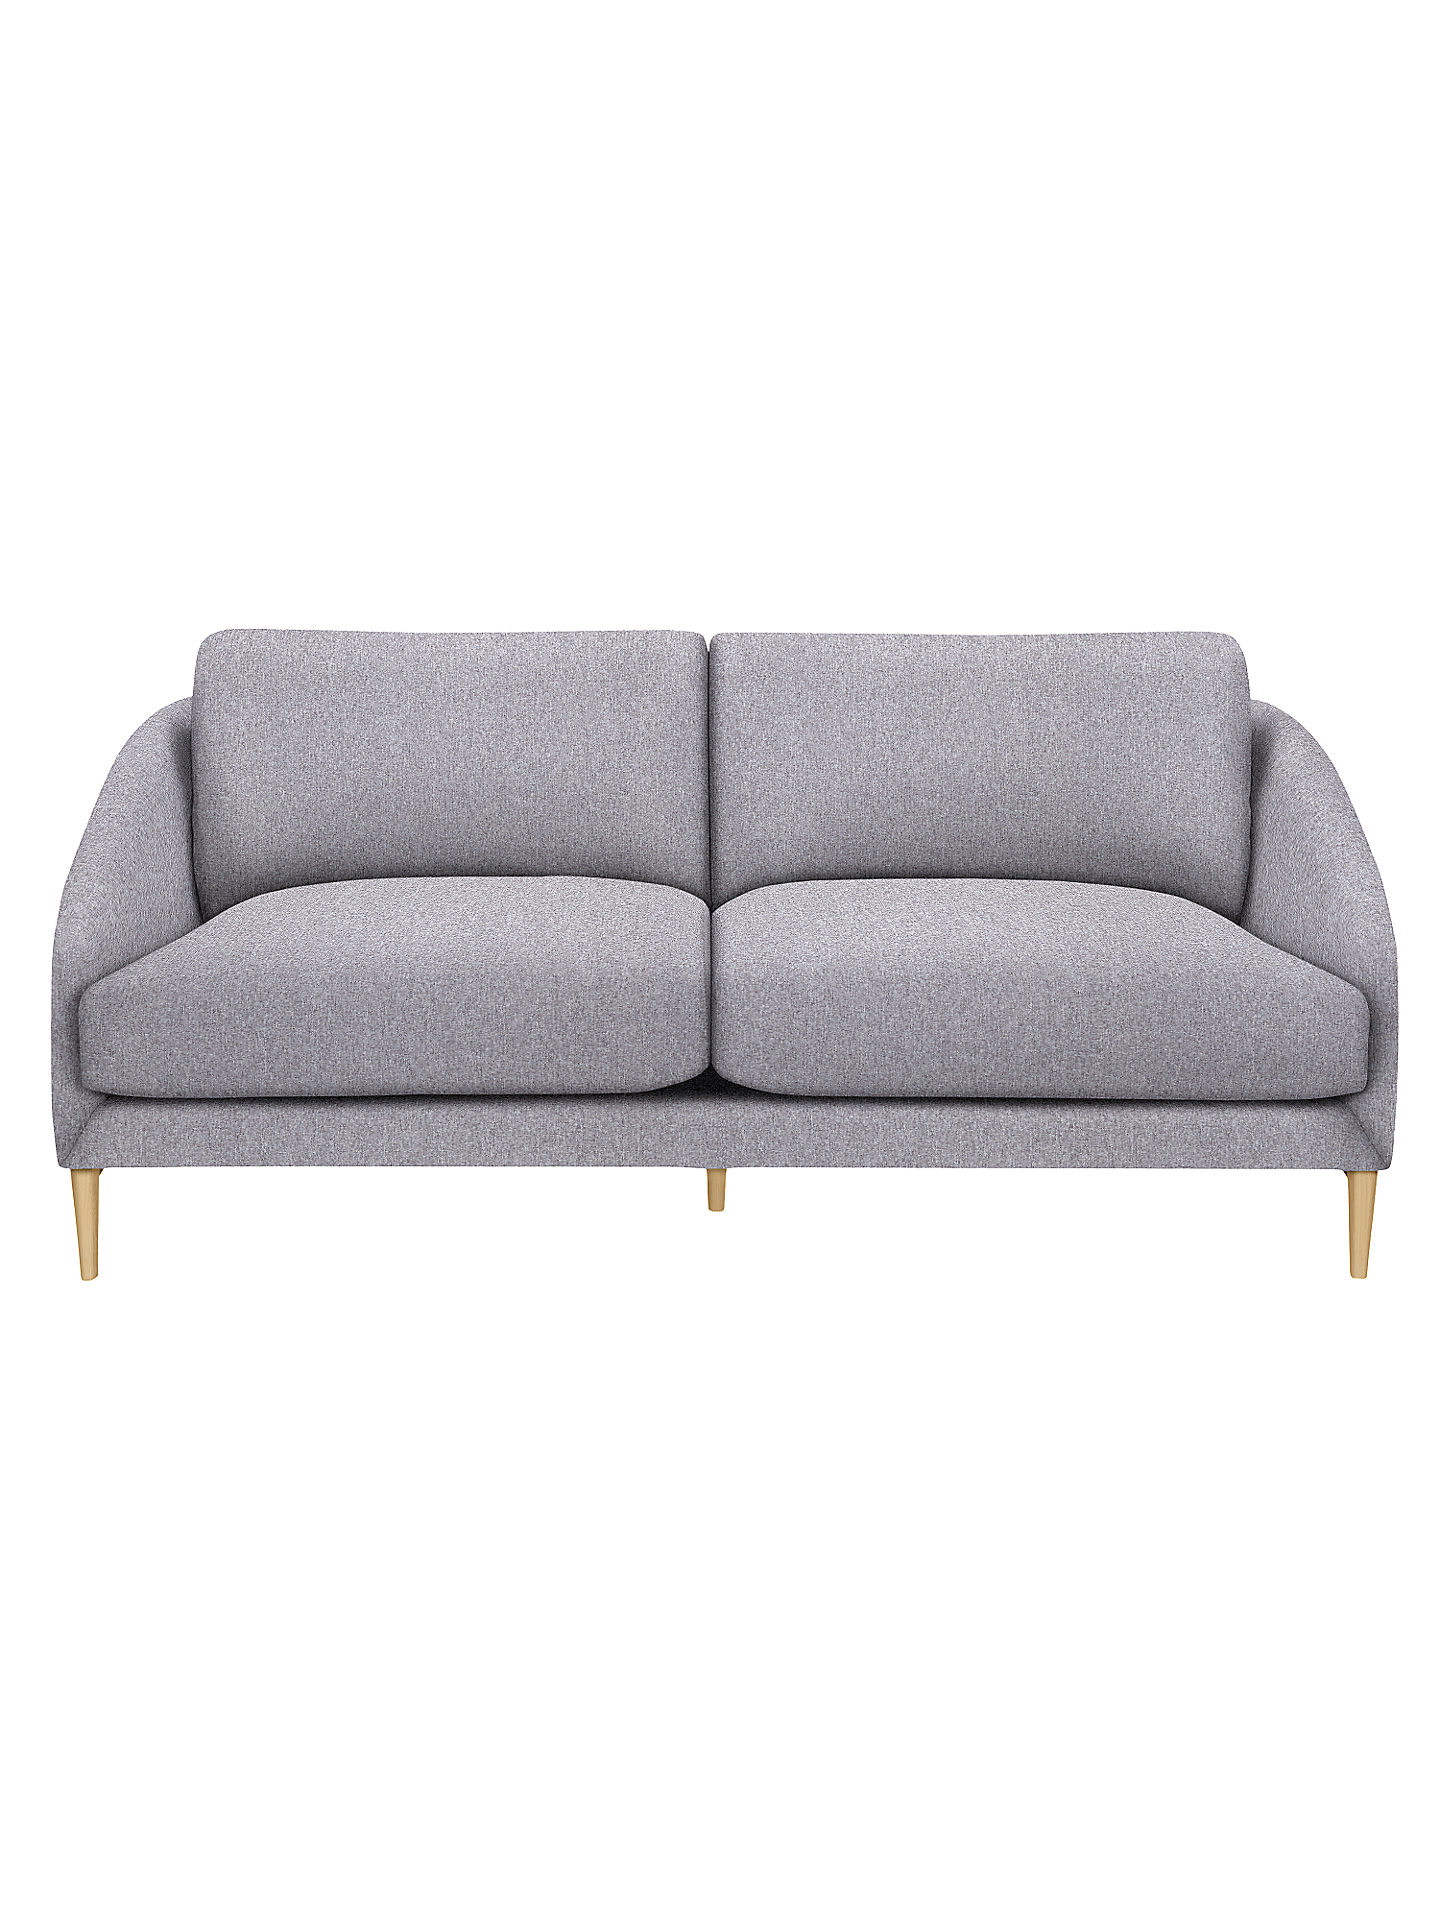 Pleasant John Lewis Partners Cape Large 3 Seater Sofa Theyellowbook Wood Chair Design Ideas Theyellowbookinfo